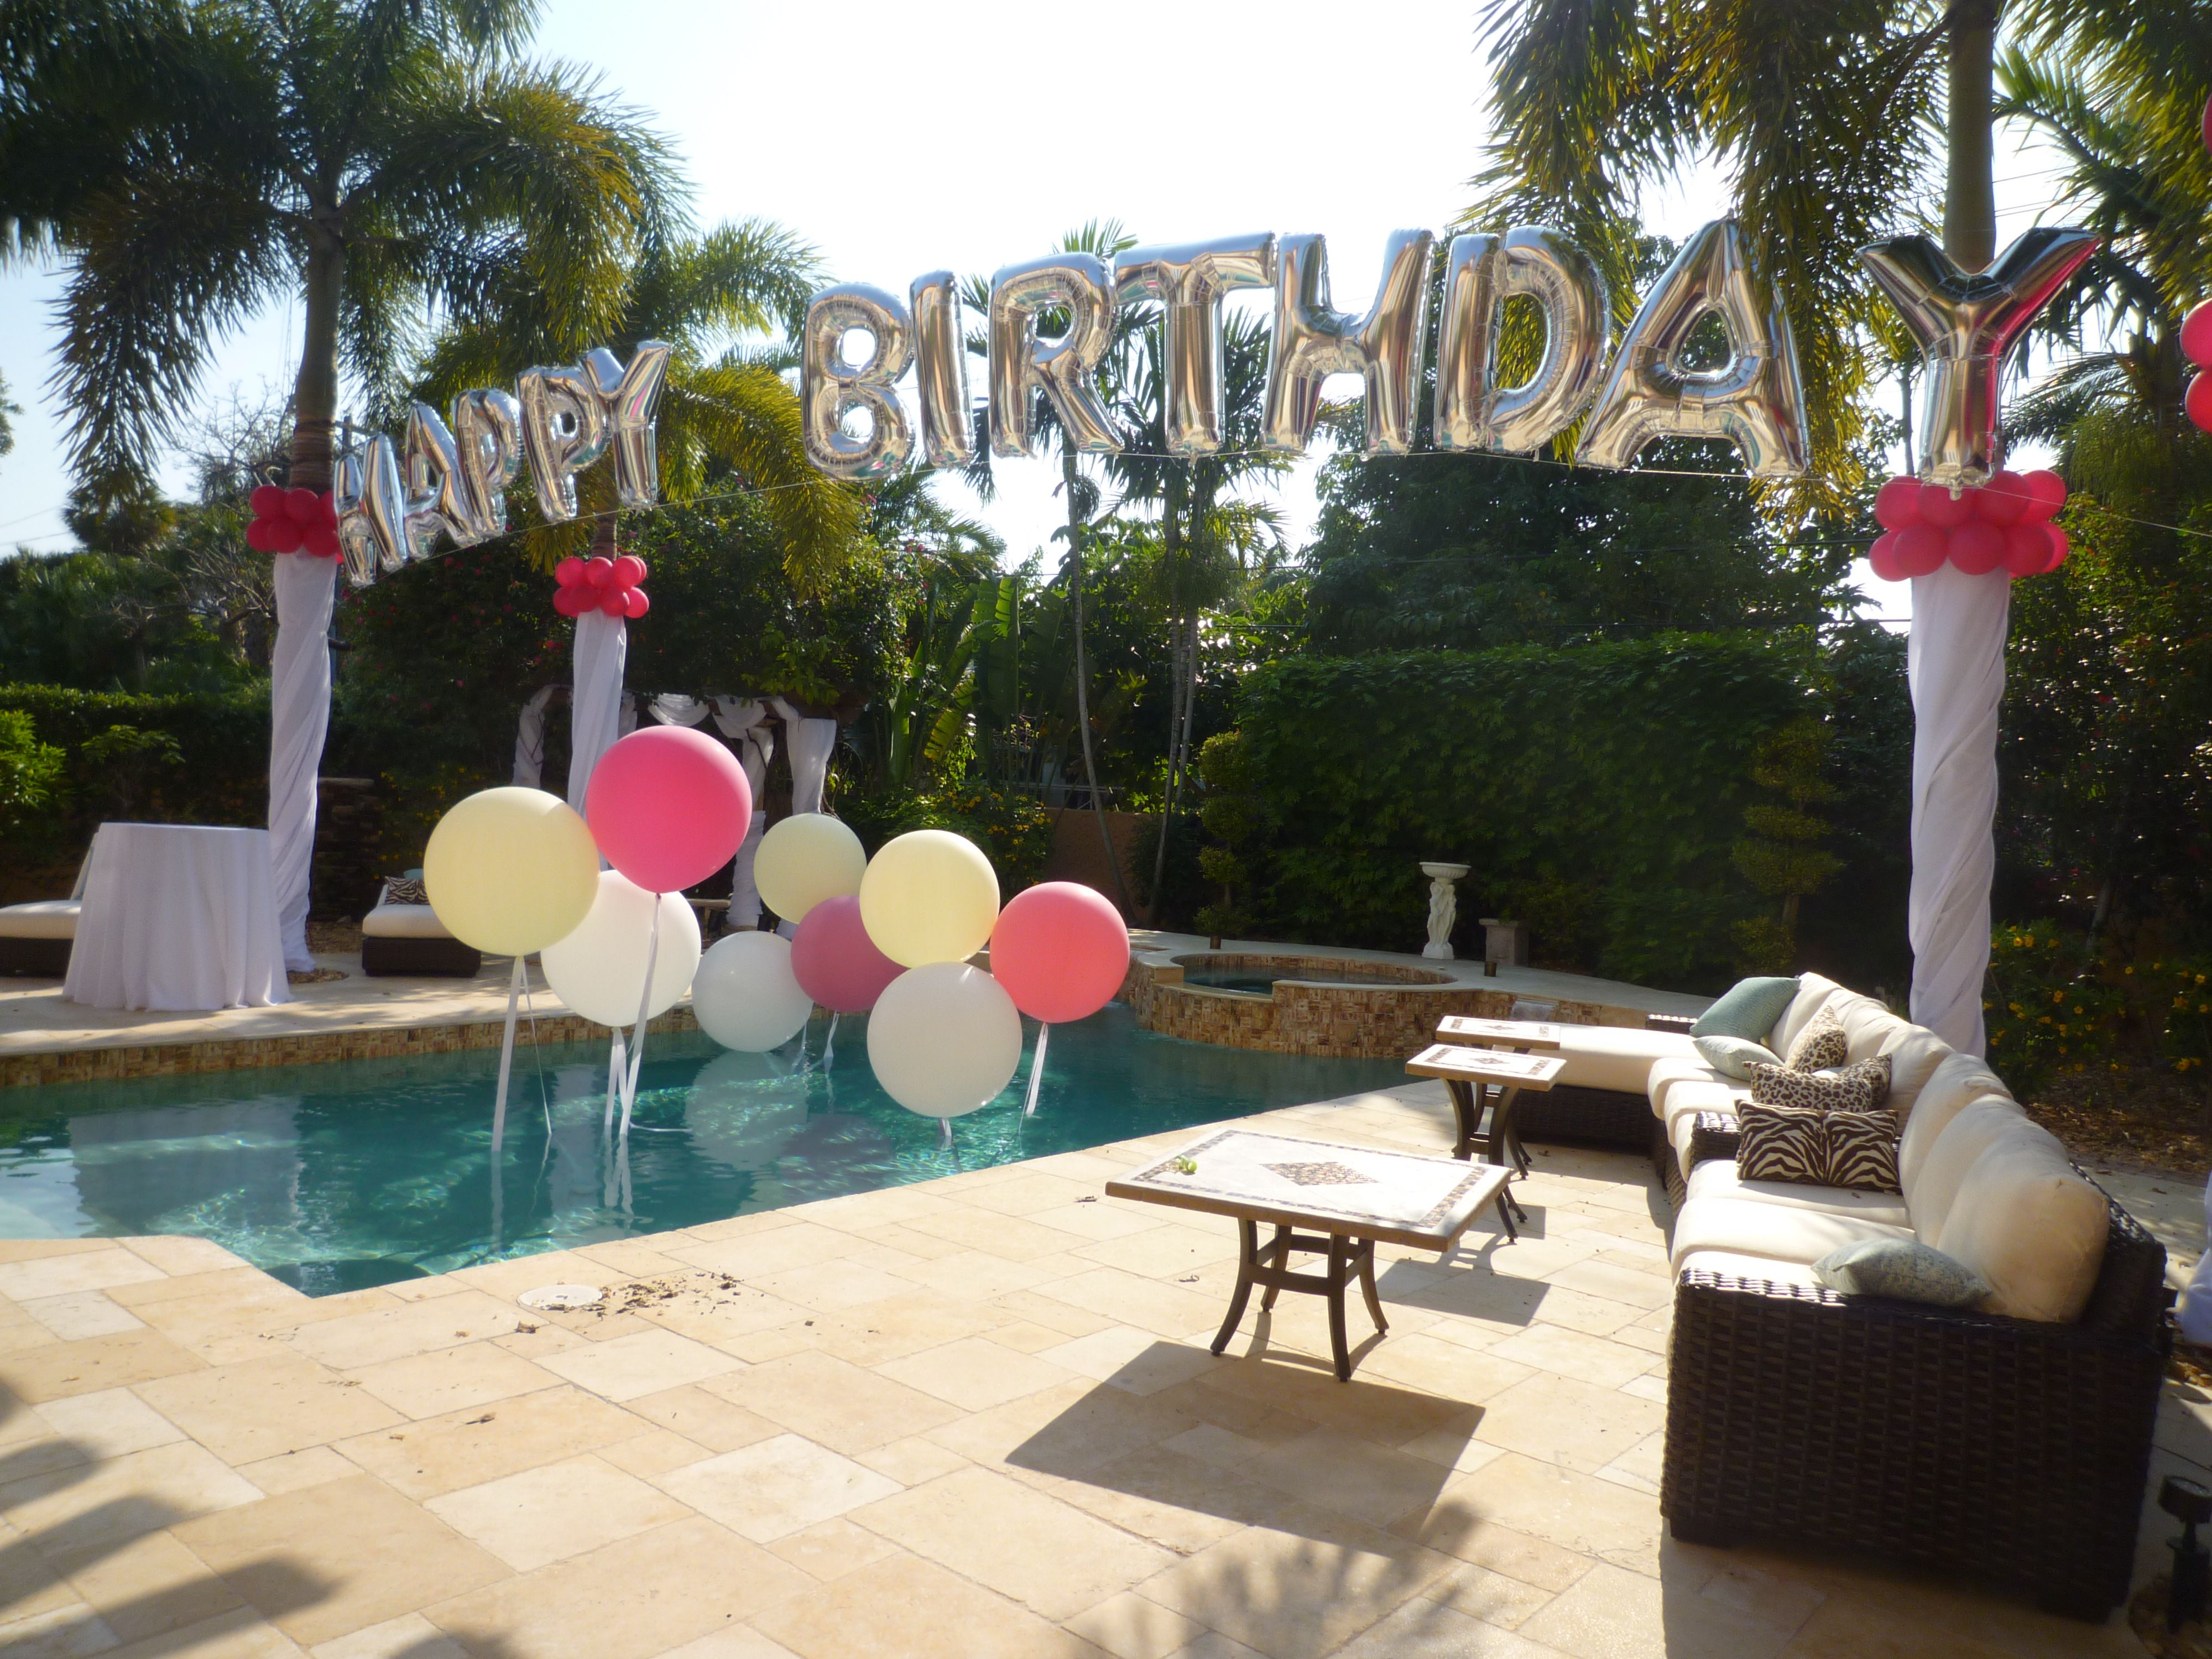 birthday balloon arch over a swimming pool backyard party decoration. Black Bedroom Furniture Sets. Home Design Ideas